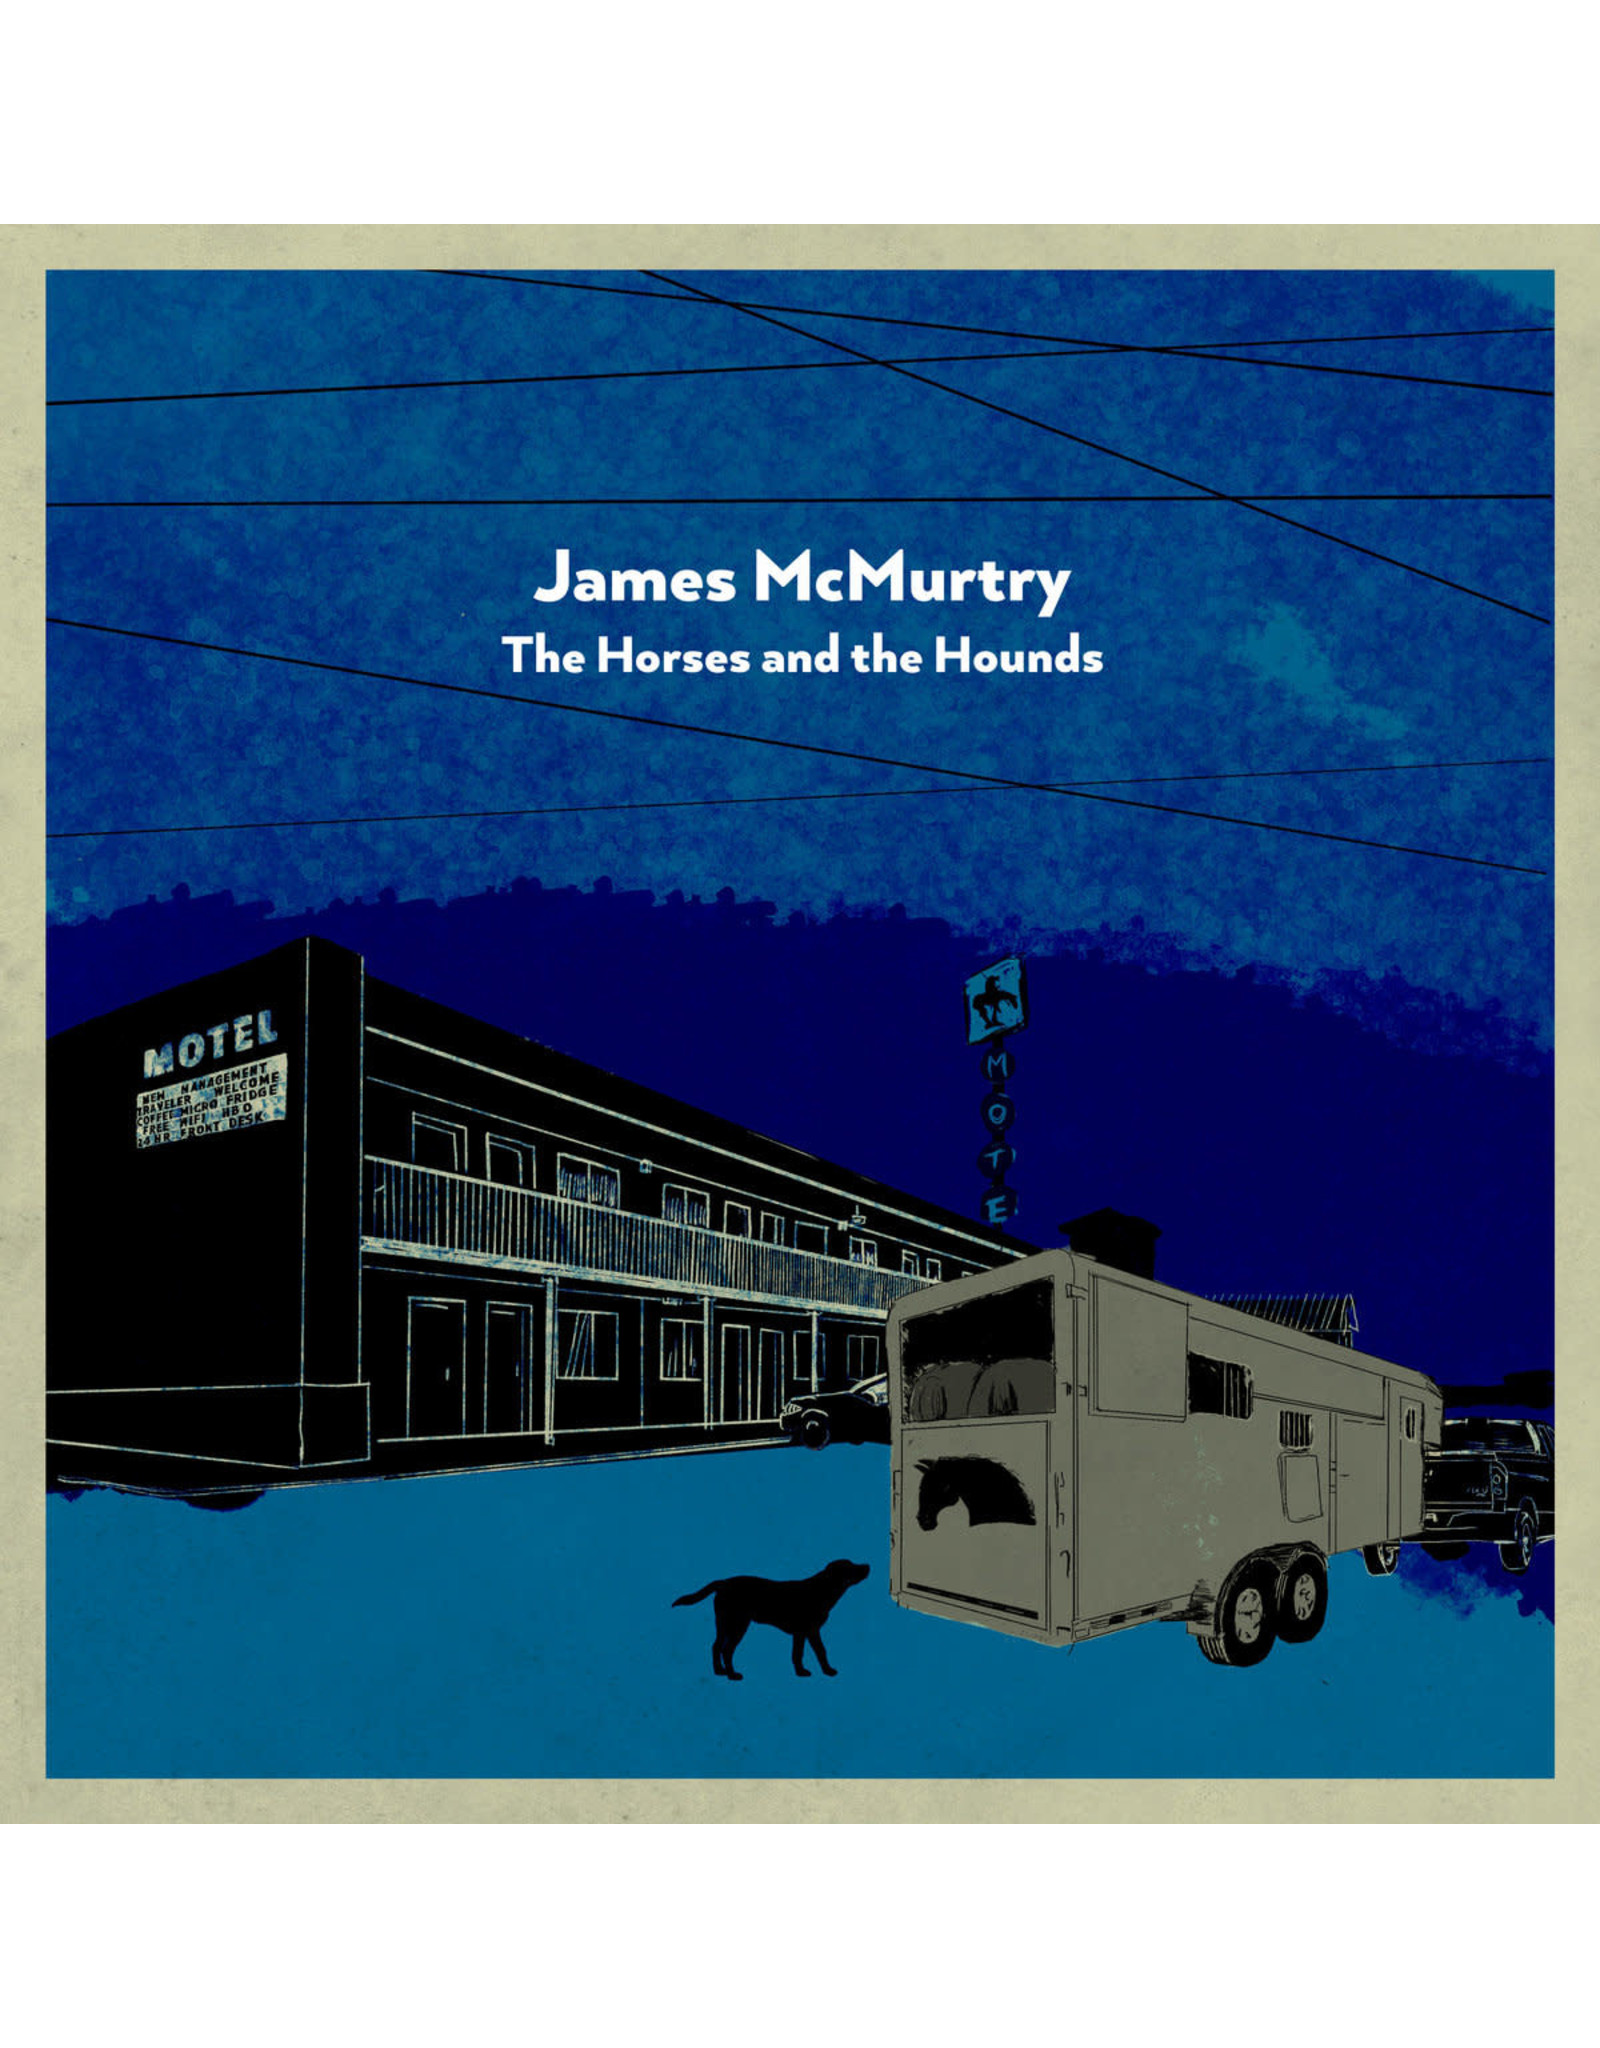 McMurtry, James - The Horses and the Hounds LP (Indie Exclusive)